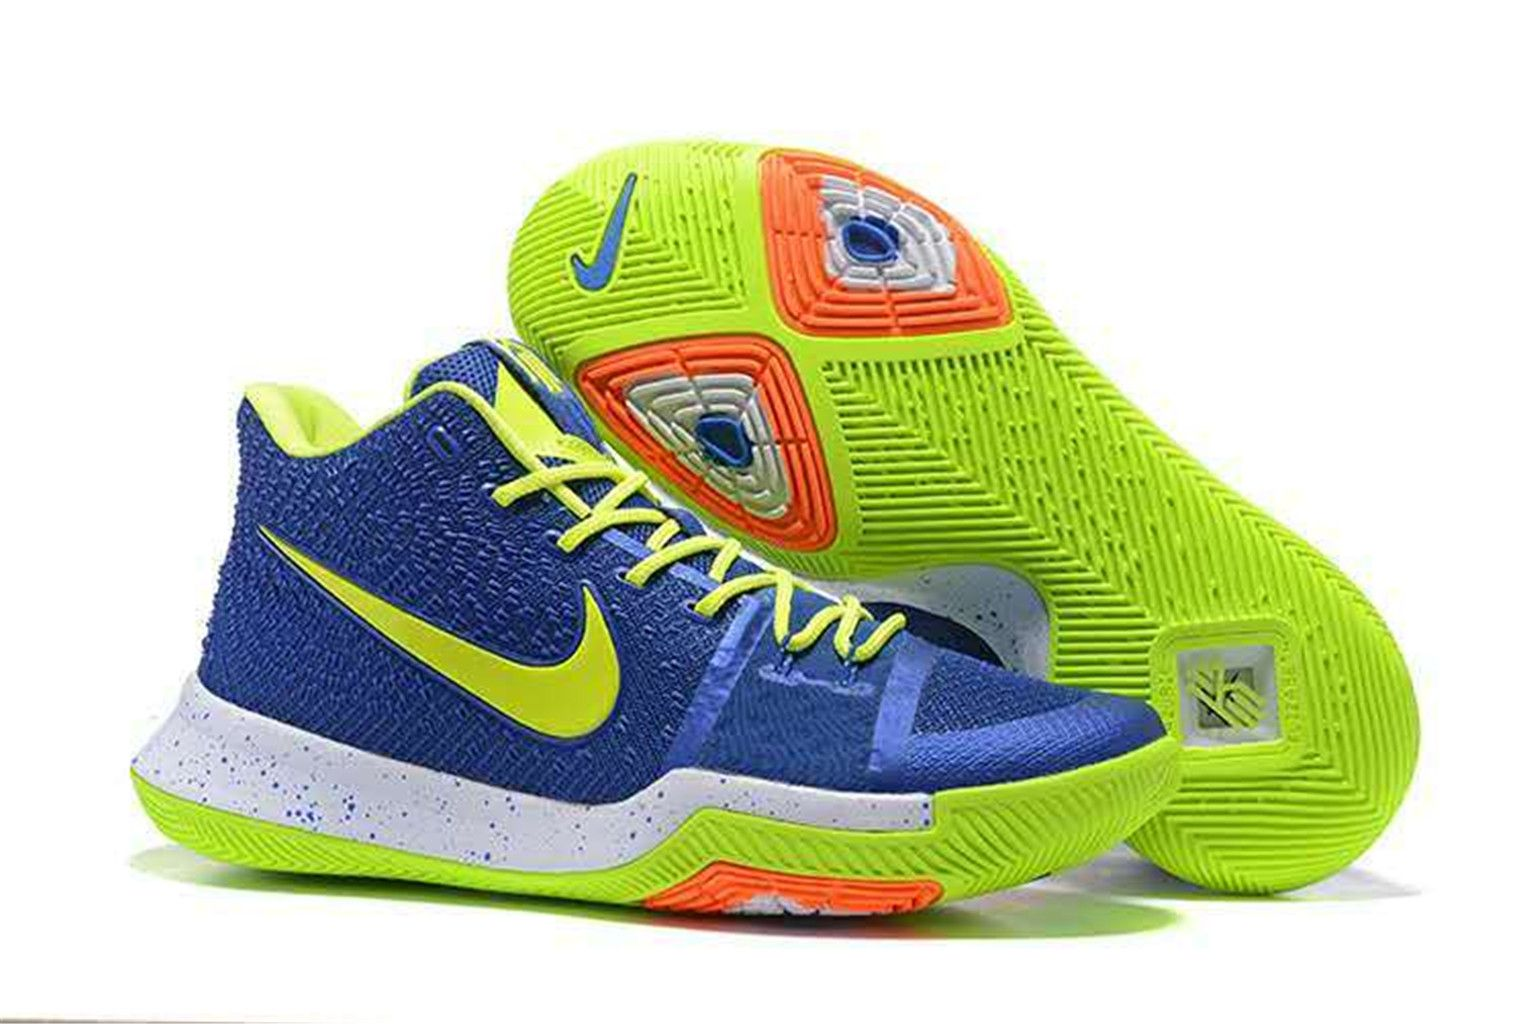 3ba45517671a Kyrie Irving 3 Basketball Shoes Fluorescent-green Blue on www.kyrie3sale.com